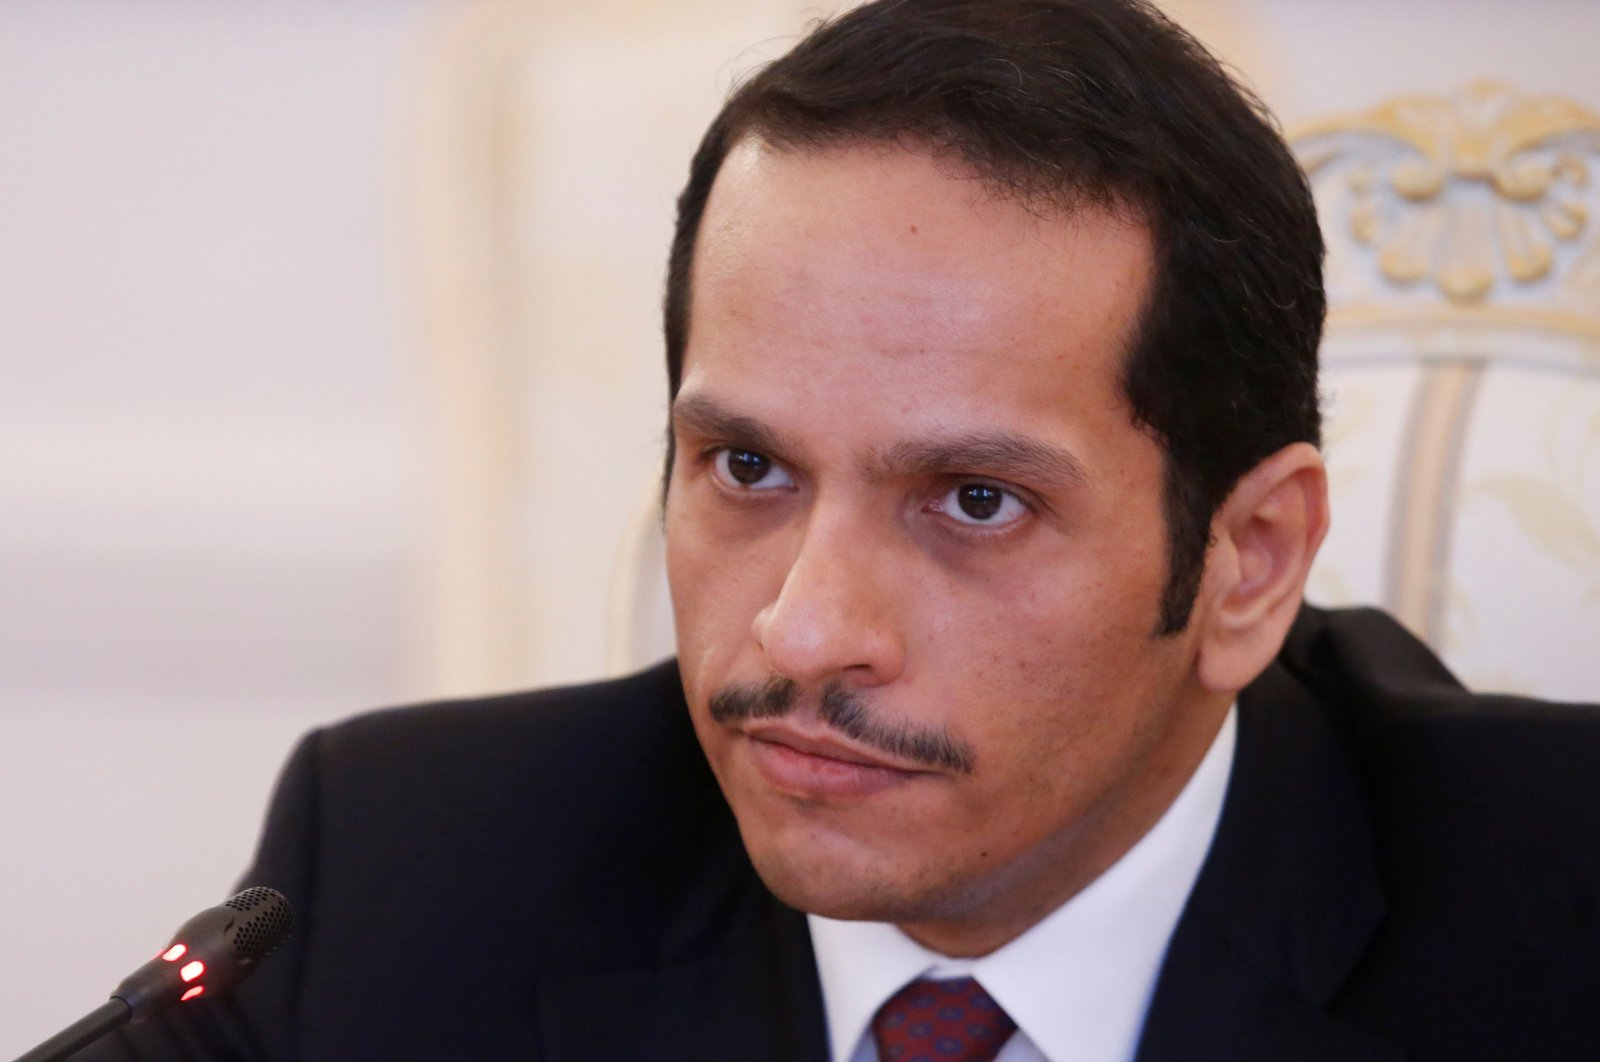 Qatari Foreign Minister Sheikh Mohammed bin Abdulrahman bin Jassim Al Thani attends a meeting with Russian Foreign Minister Sergei Lavrov in Moscow, Russia, April 15, 2017. (Reuters File Photo)